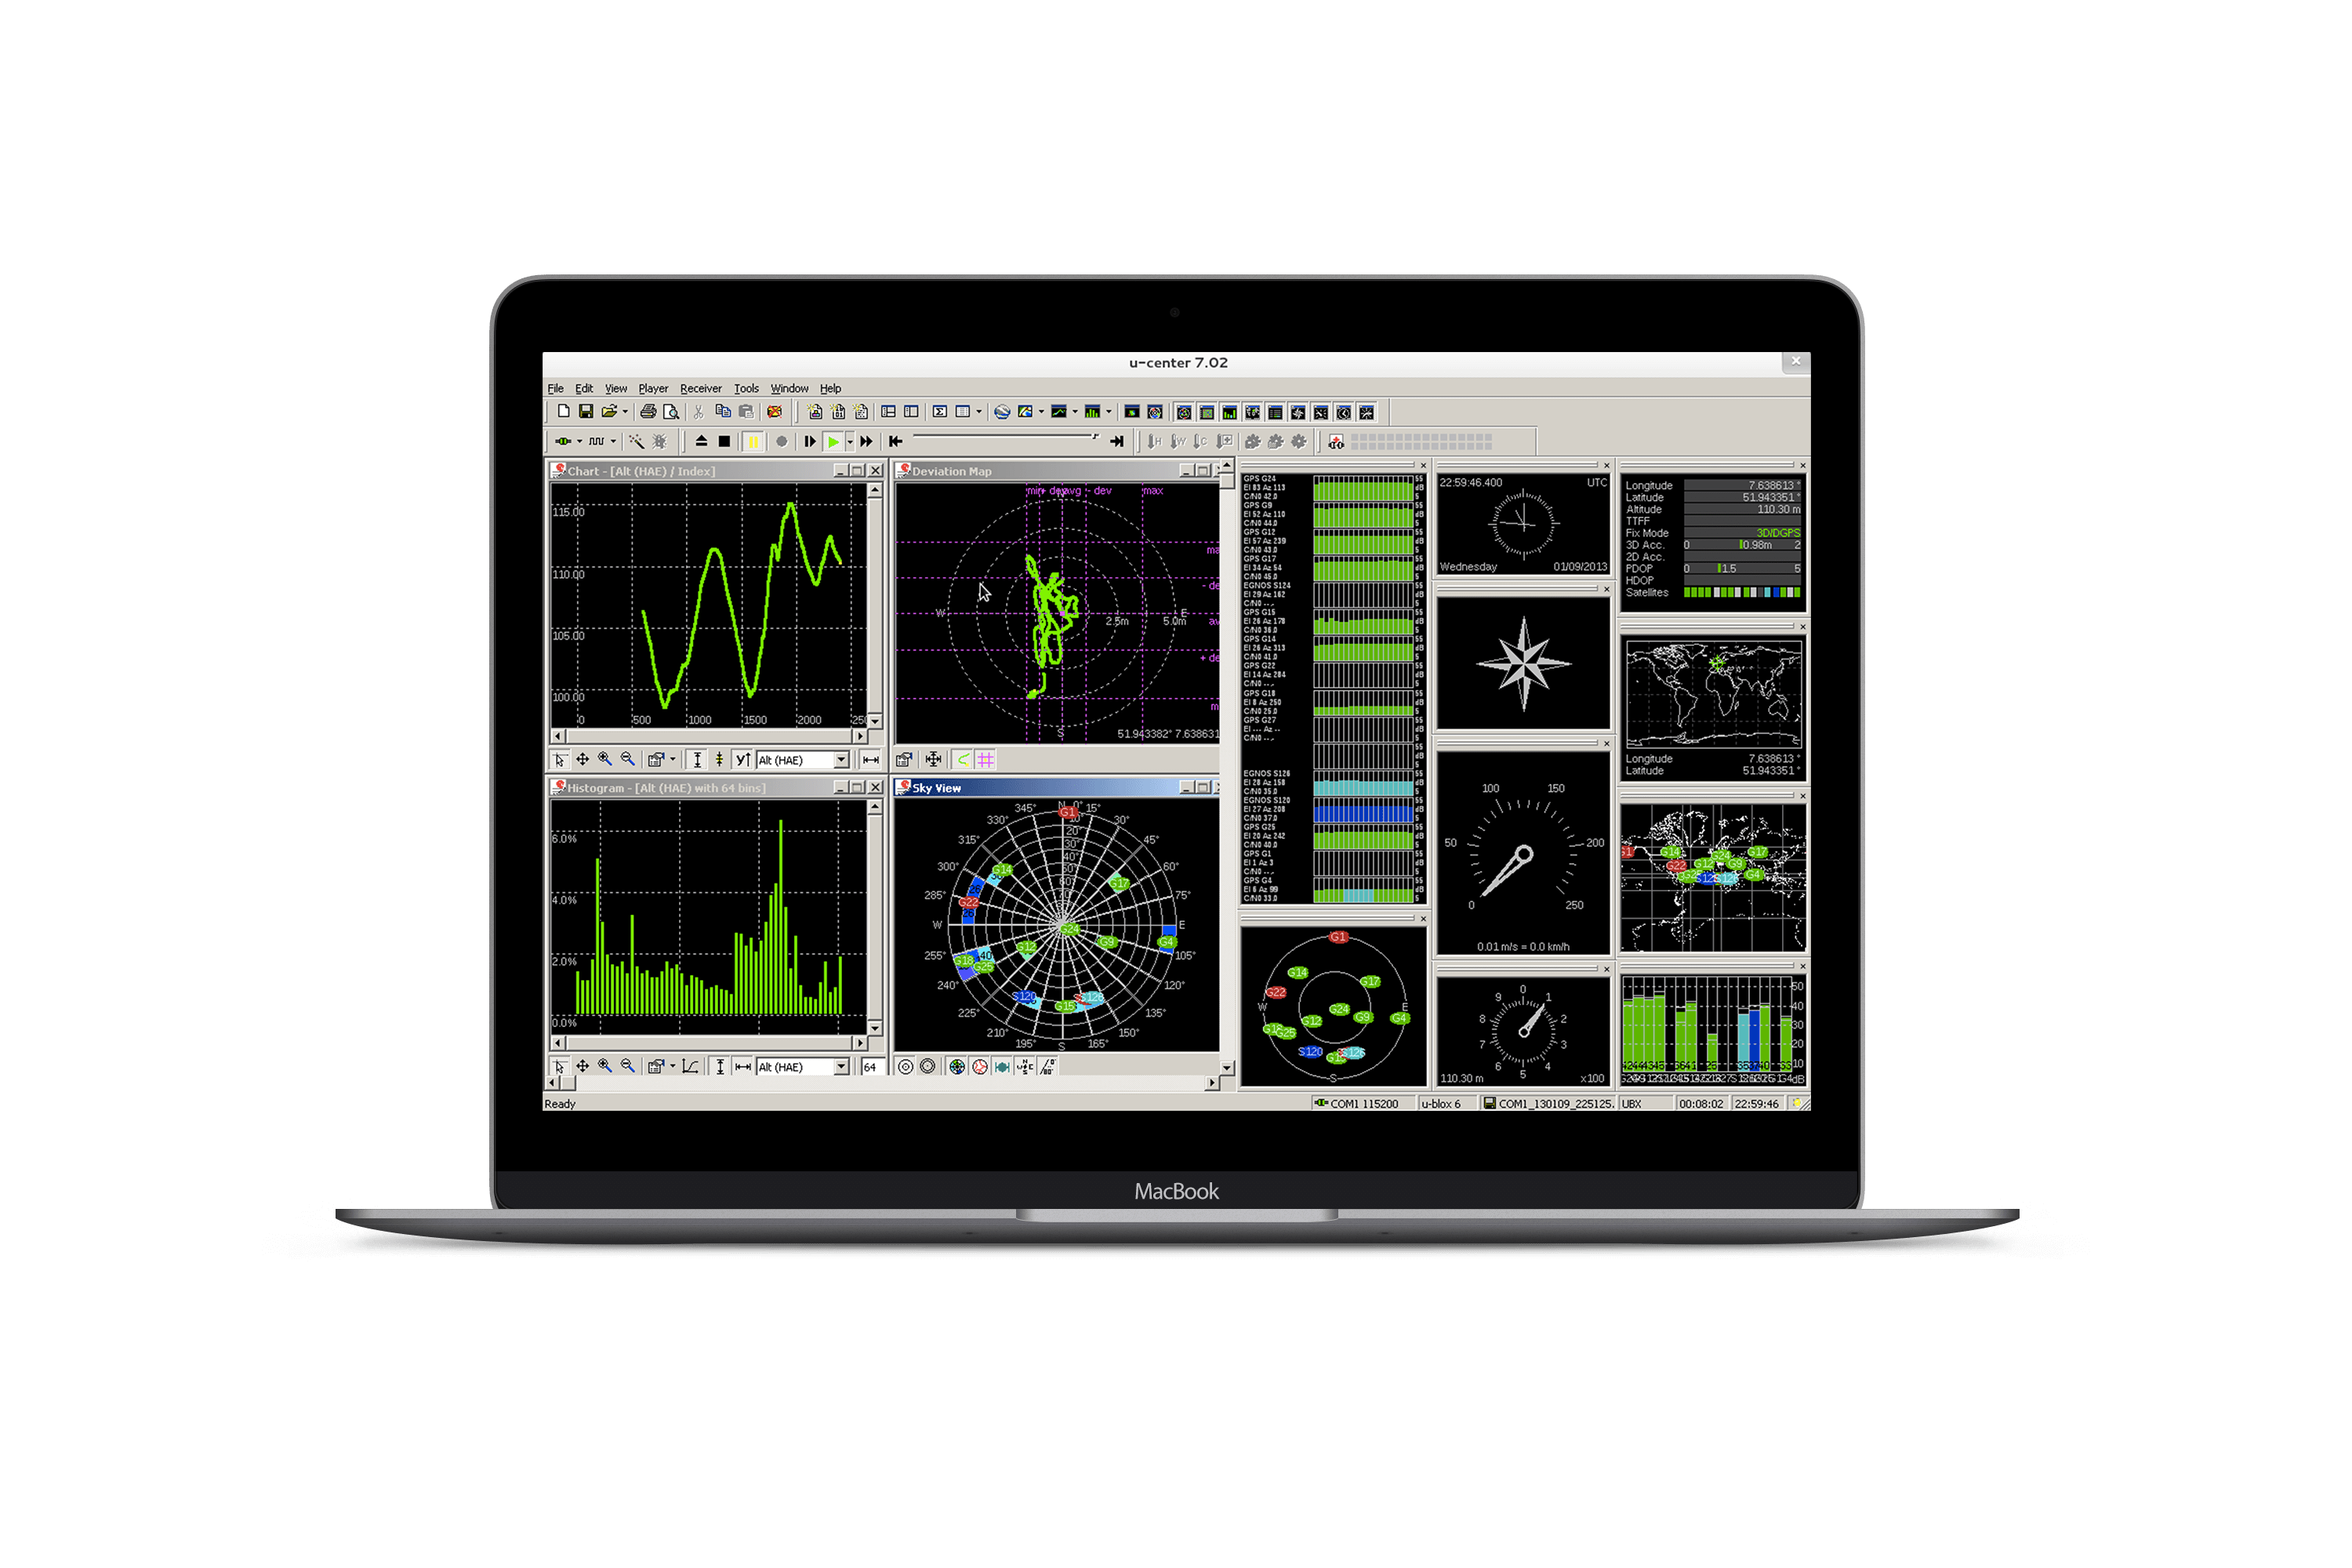 A powerful platform for product evaluation, configuration, testing  and realtime performance visualization of u-blox GNSS receiver products.